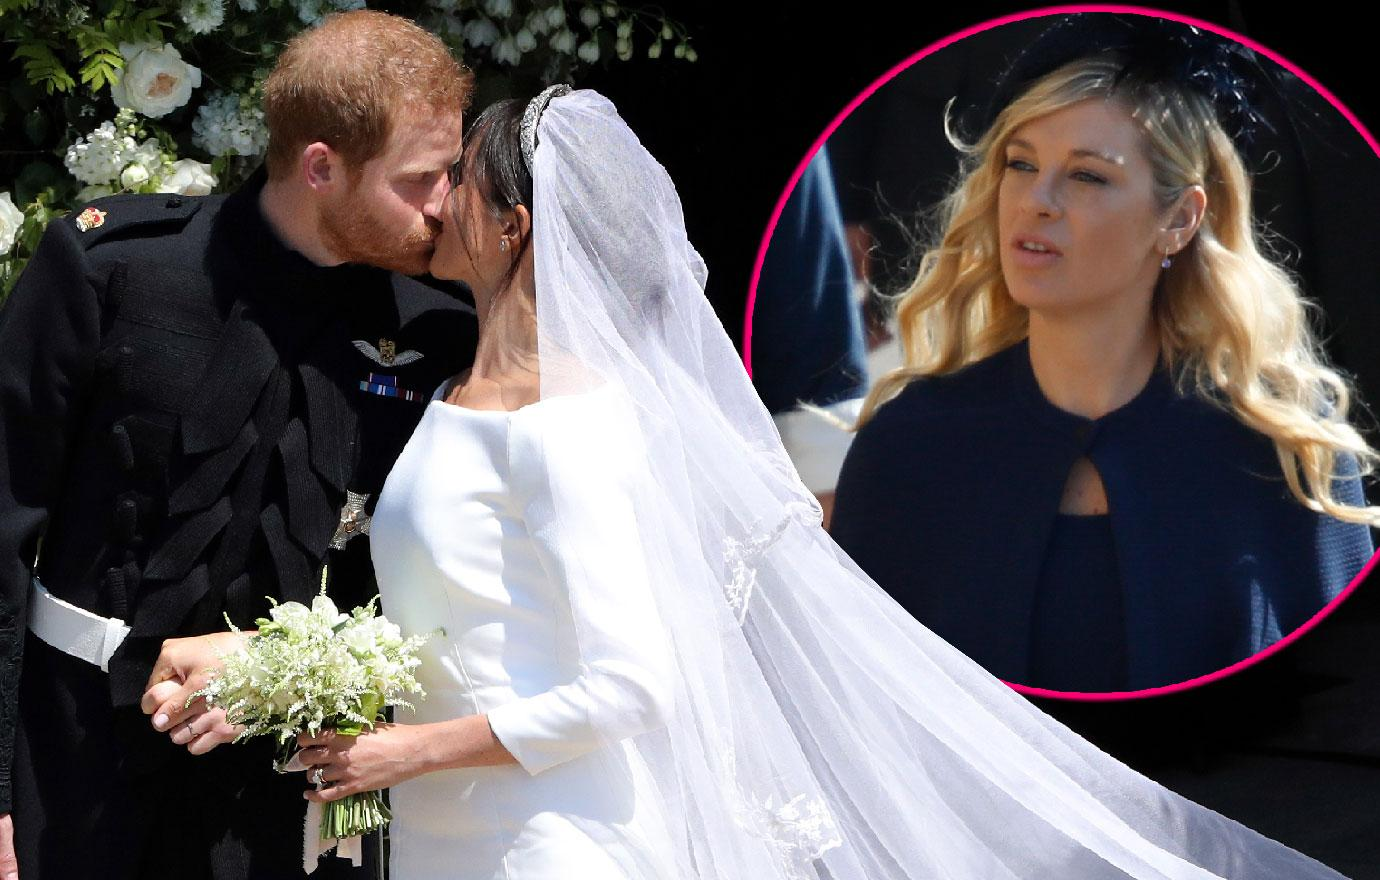 Prince Harry Ex Chelsy Davy Should Have Been Me Look At Royal Wedding